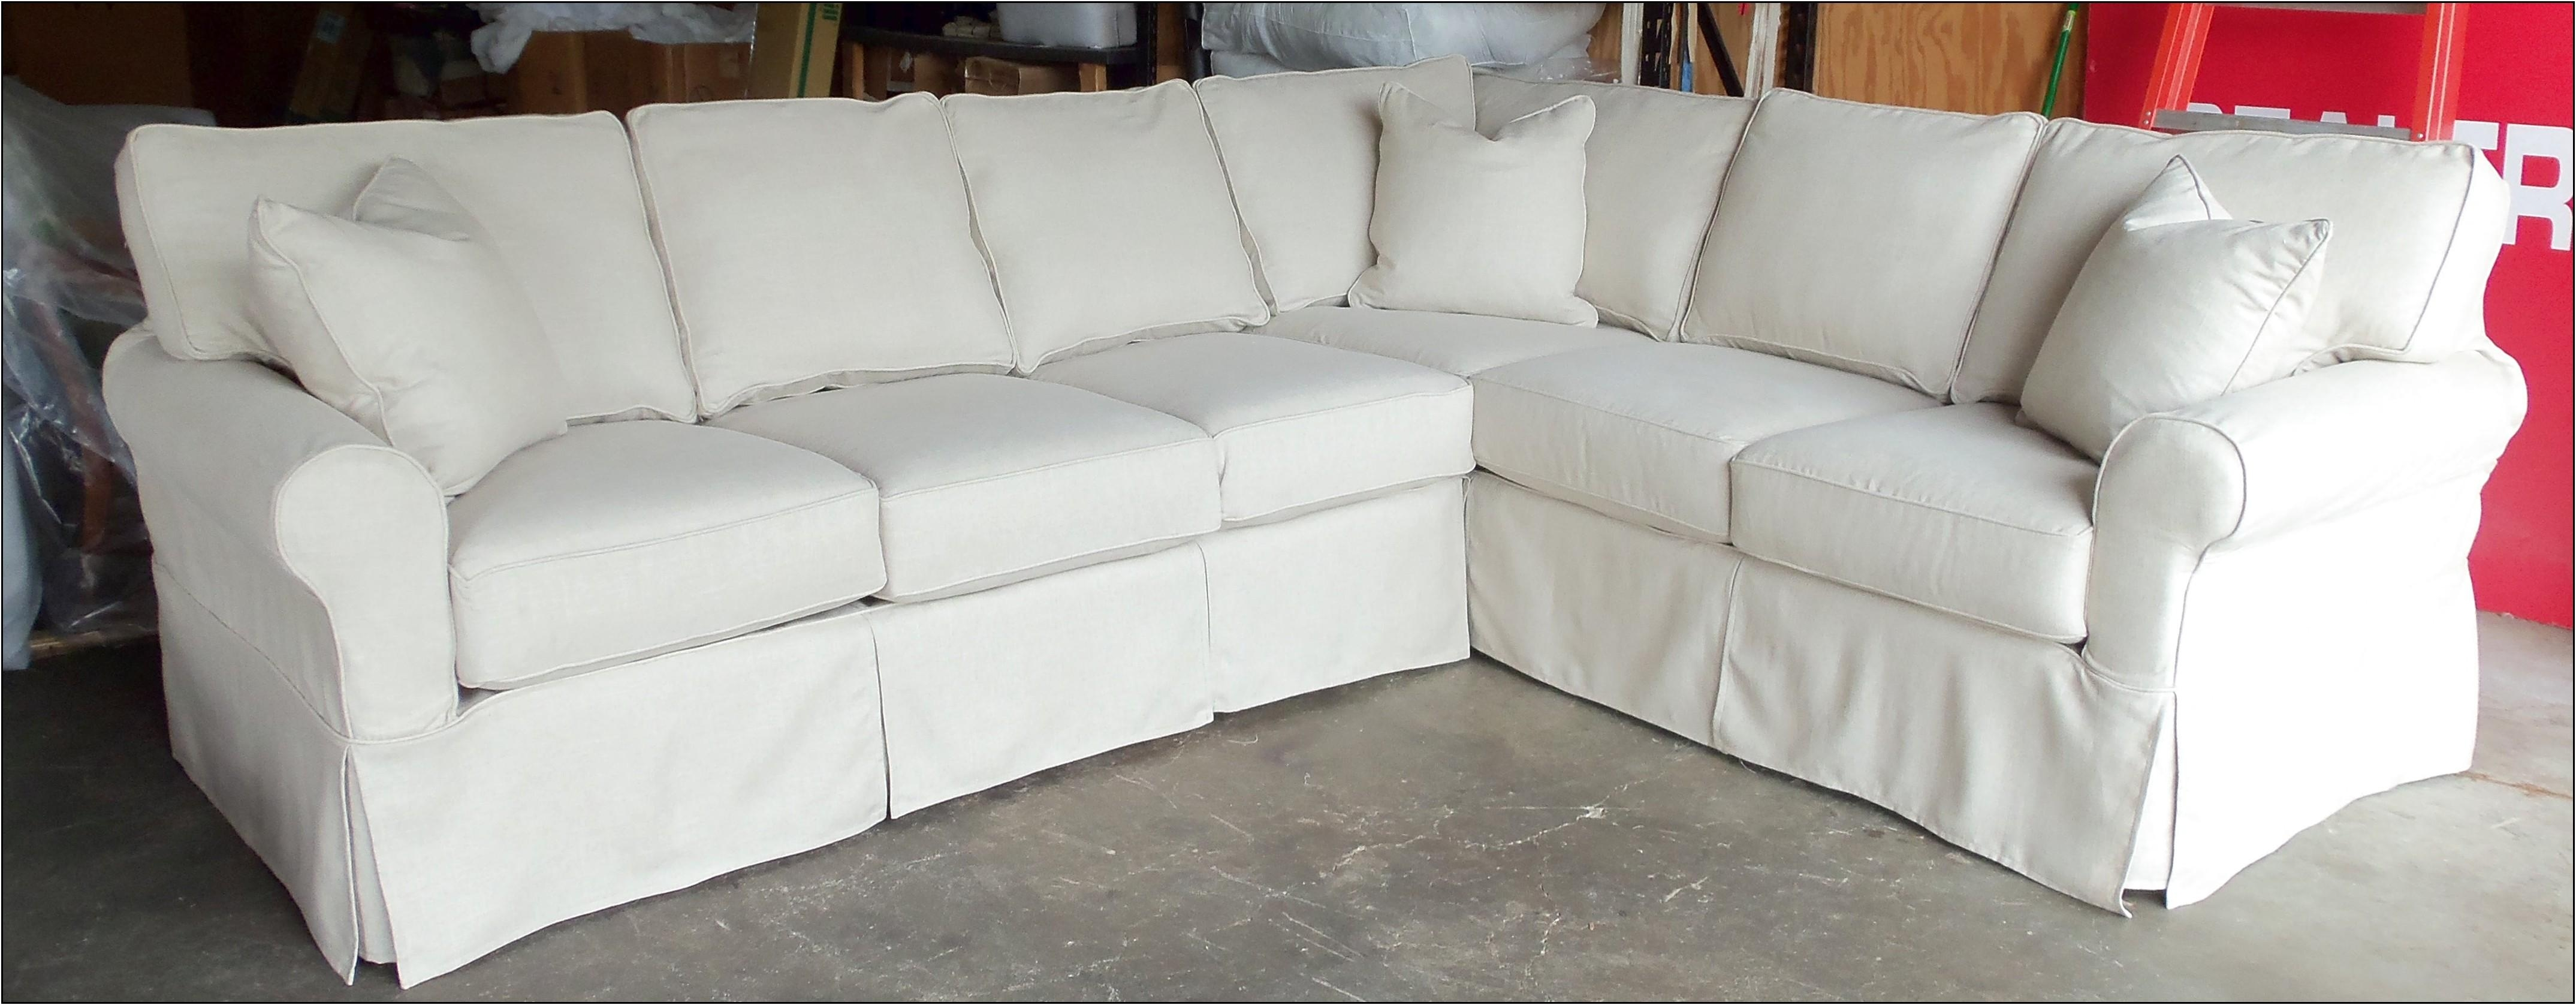 Furniture: Slipcovers For Couch | Walmart Chair Covers | Sofa Intended For Slipcovers Sofas (Image 9 of 20)